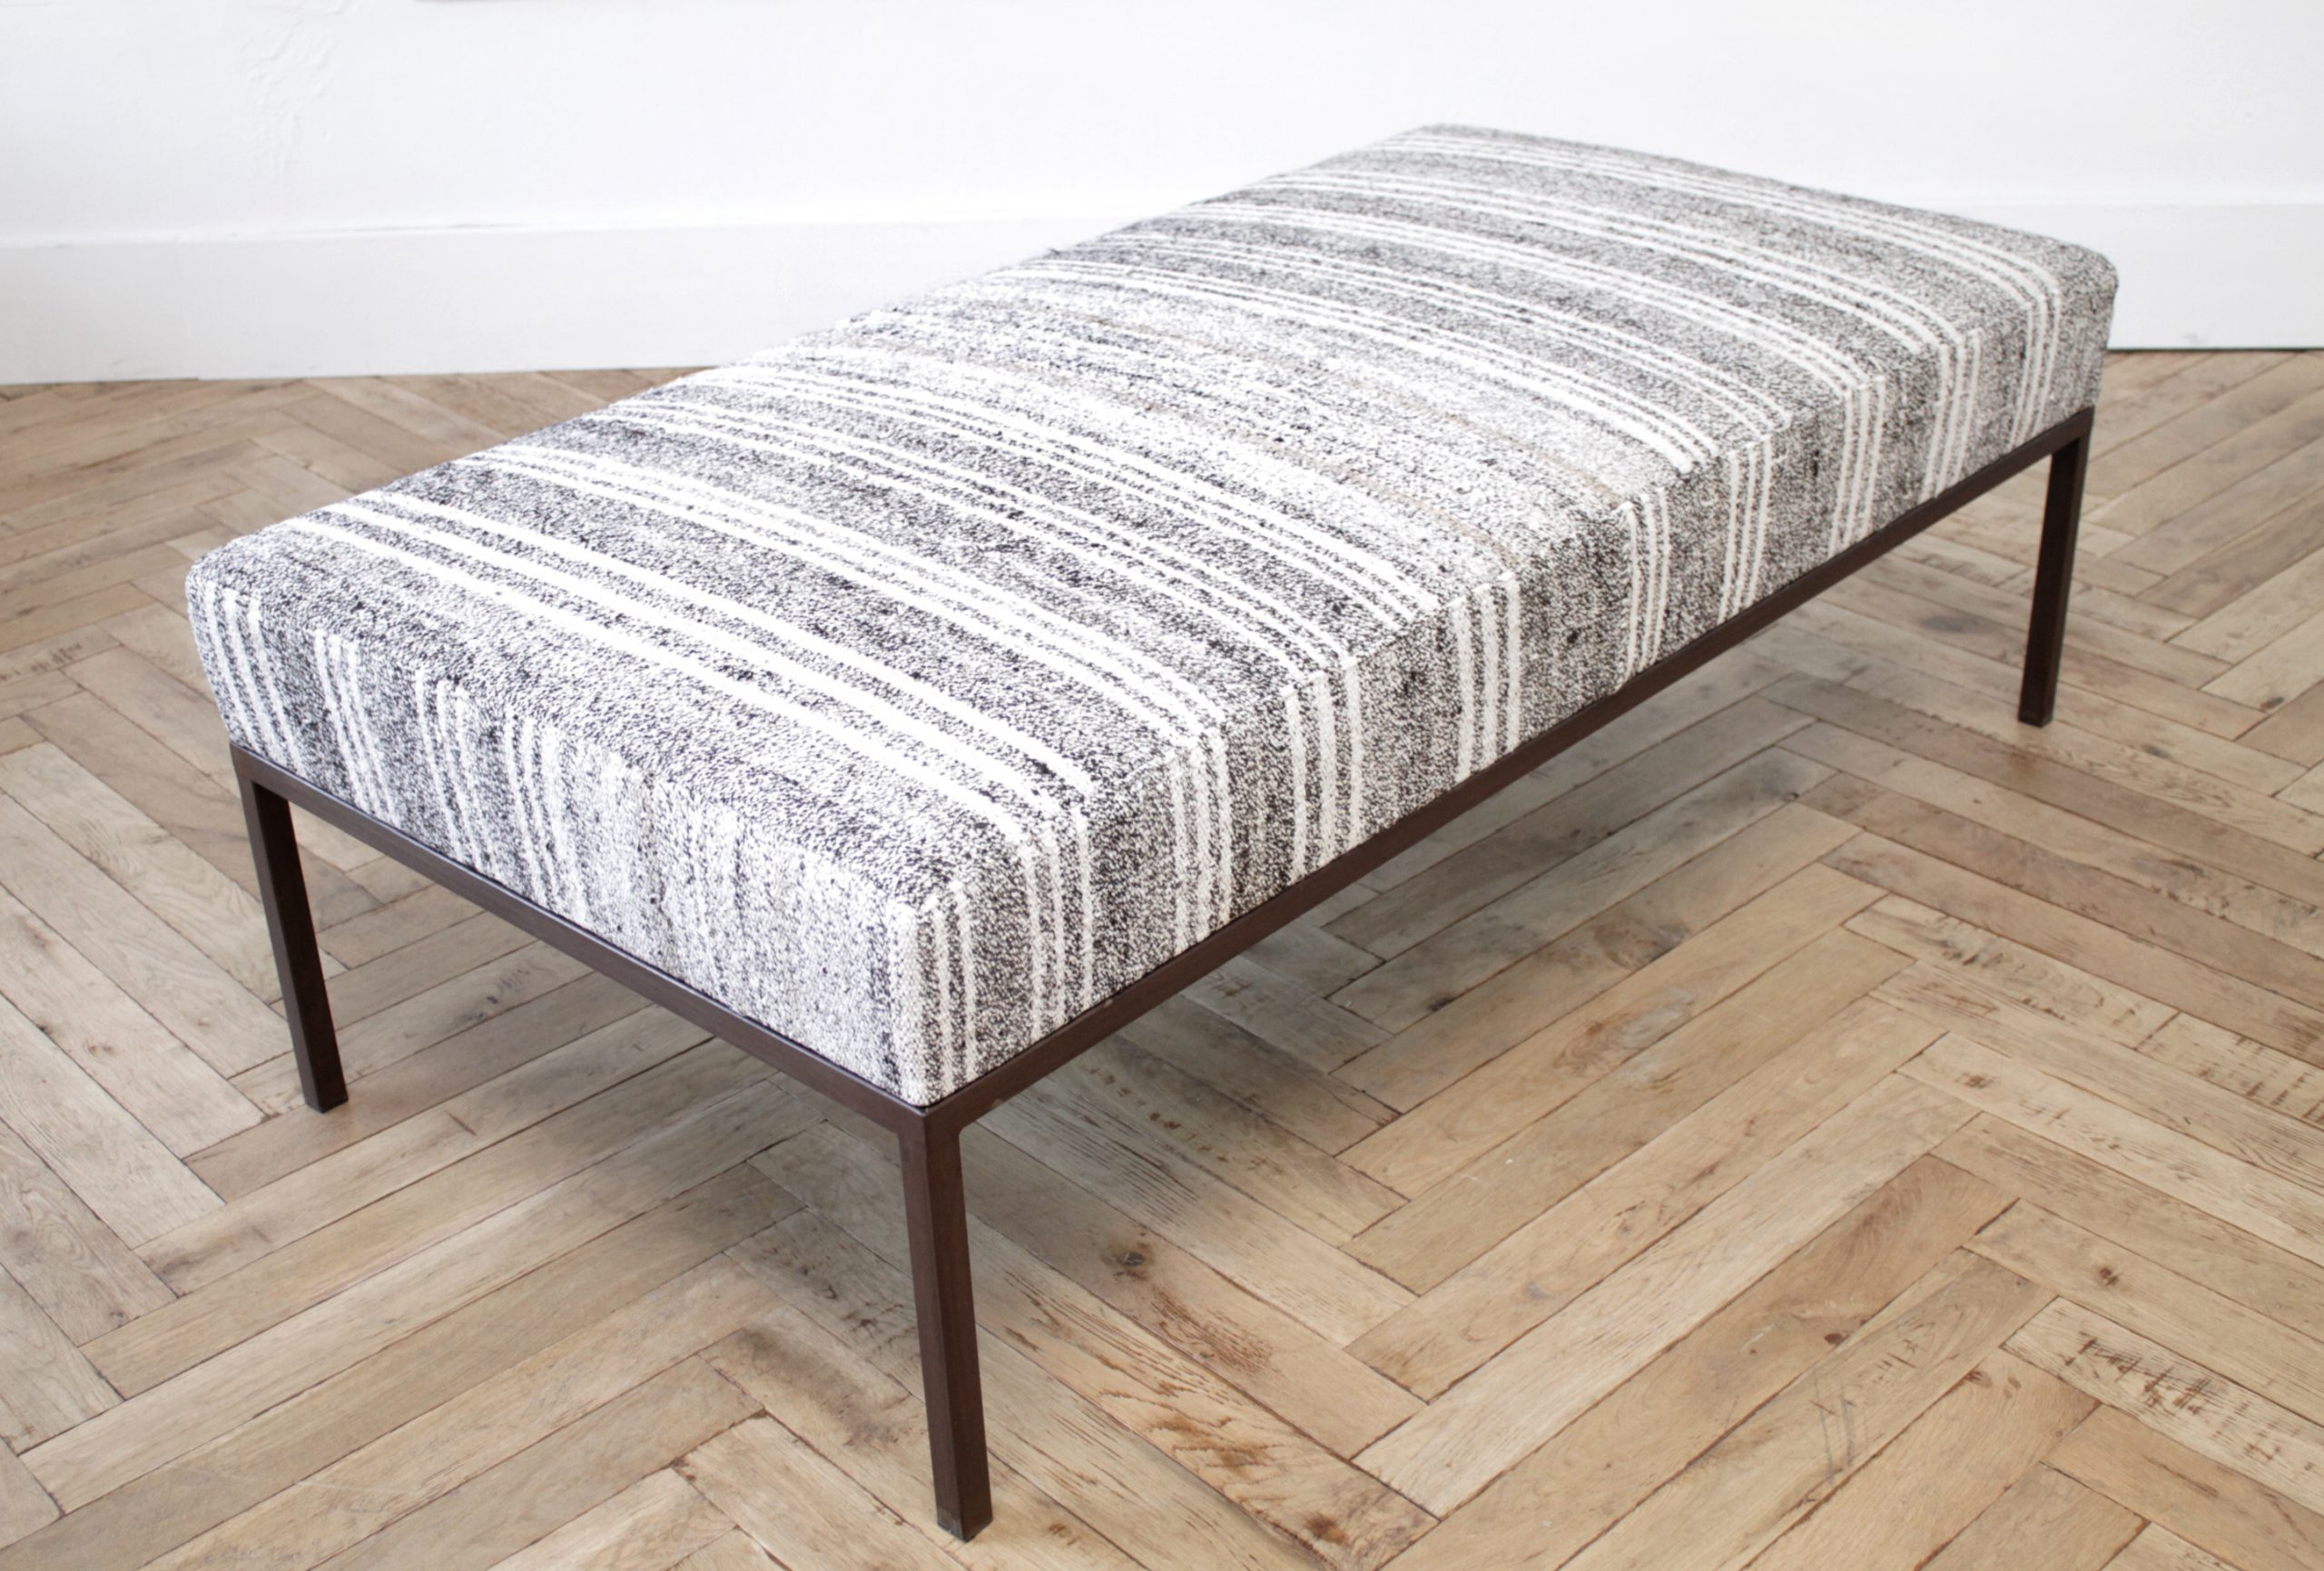 Custom Made Iron Upholstered Cocktail Table Bench Ottoman